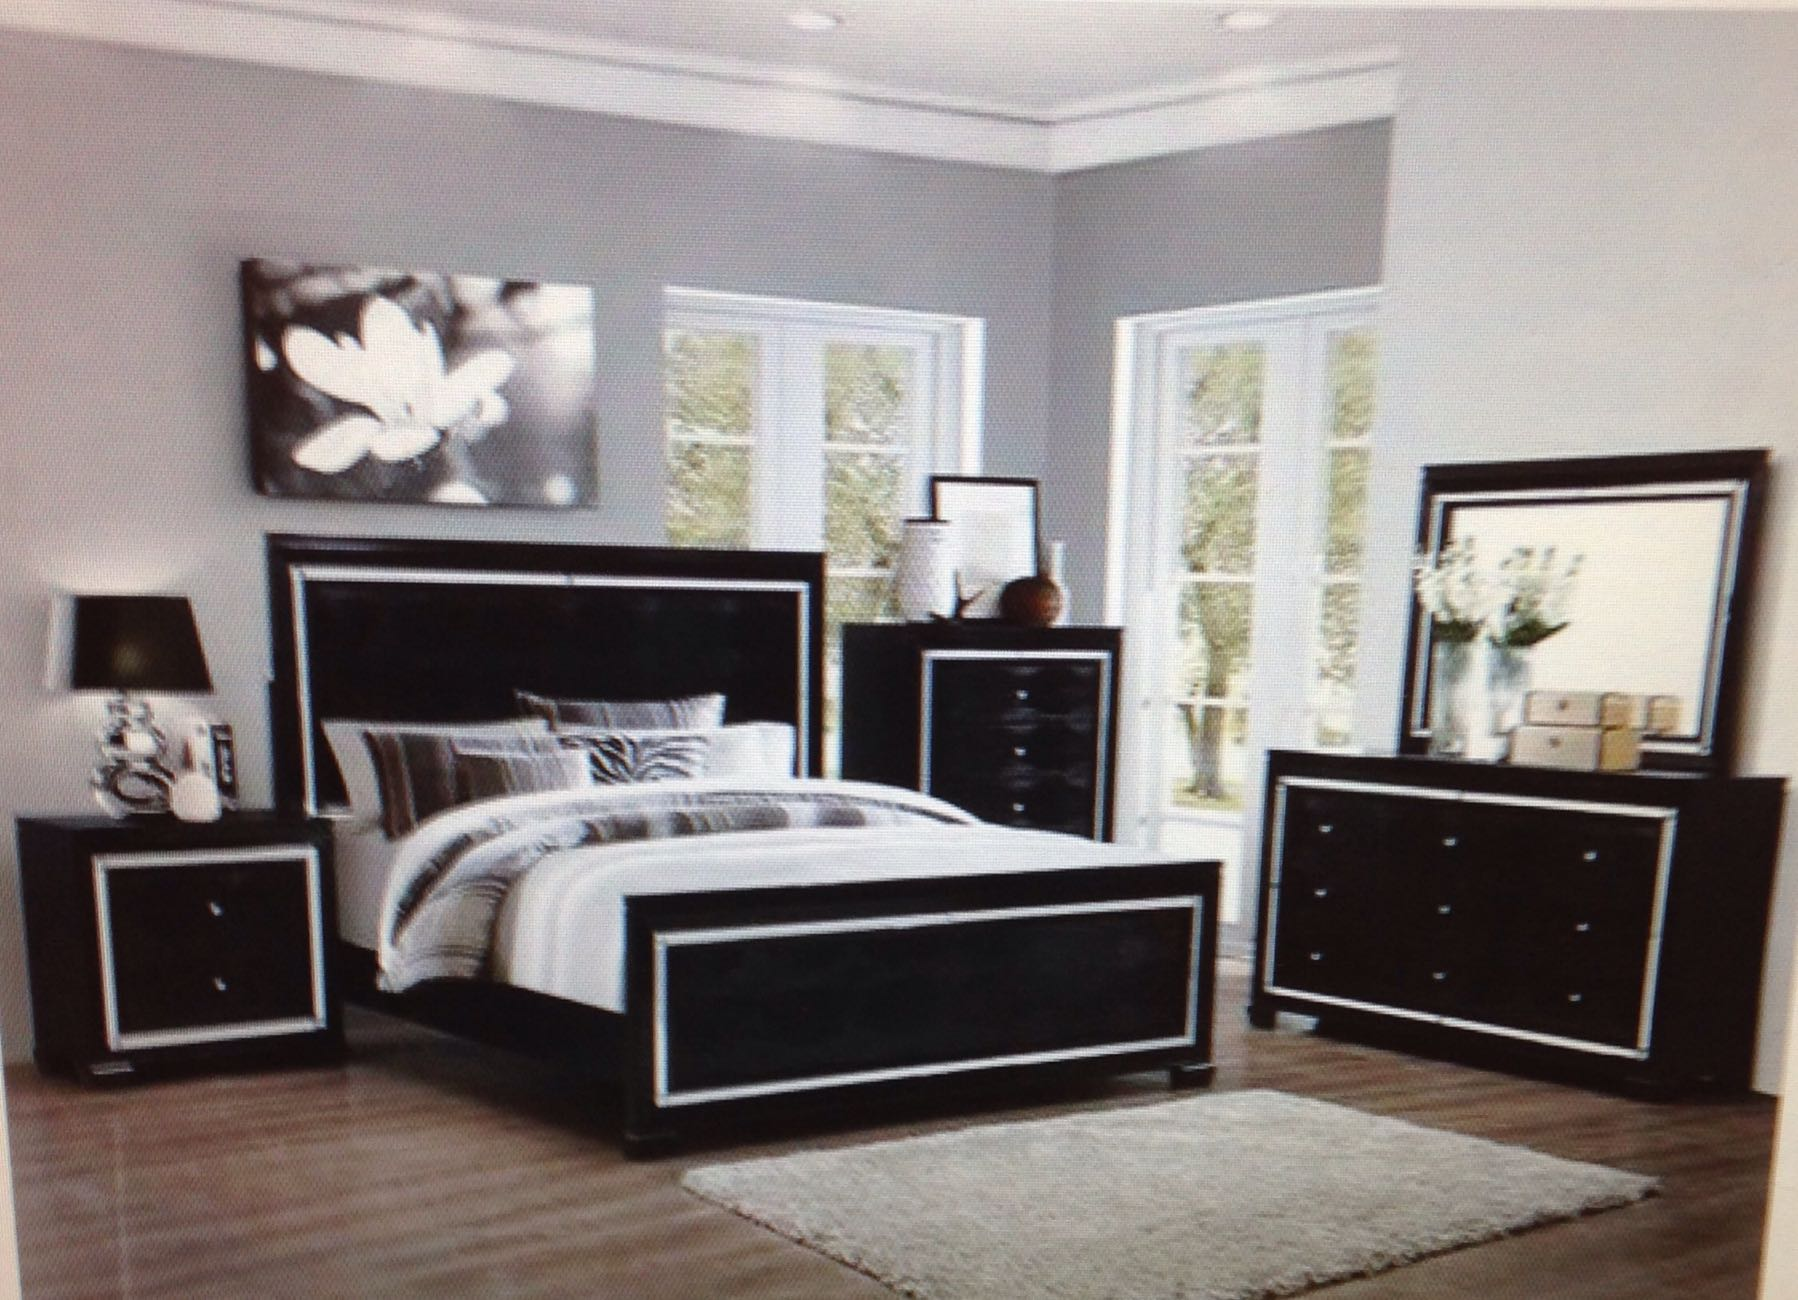 aria bedroom set . sale, sale, sale. king size set for $1400.00